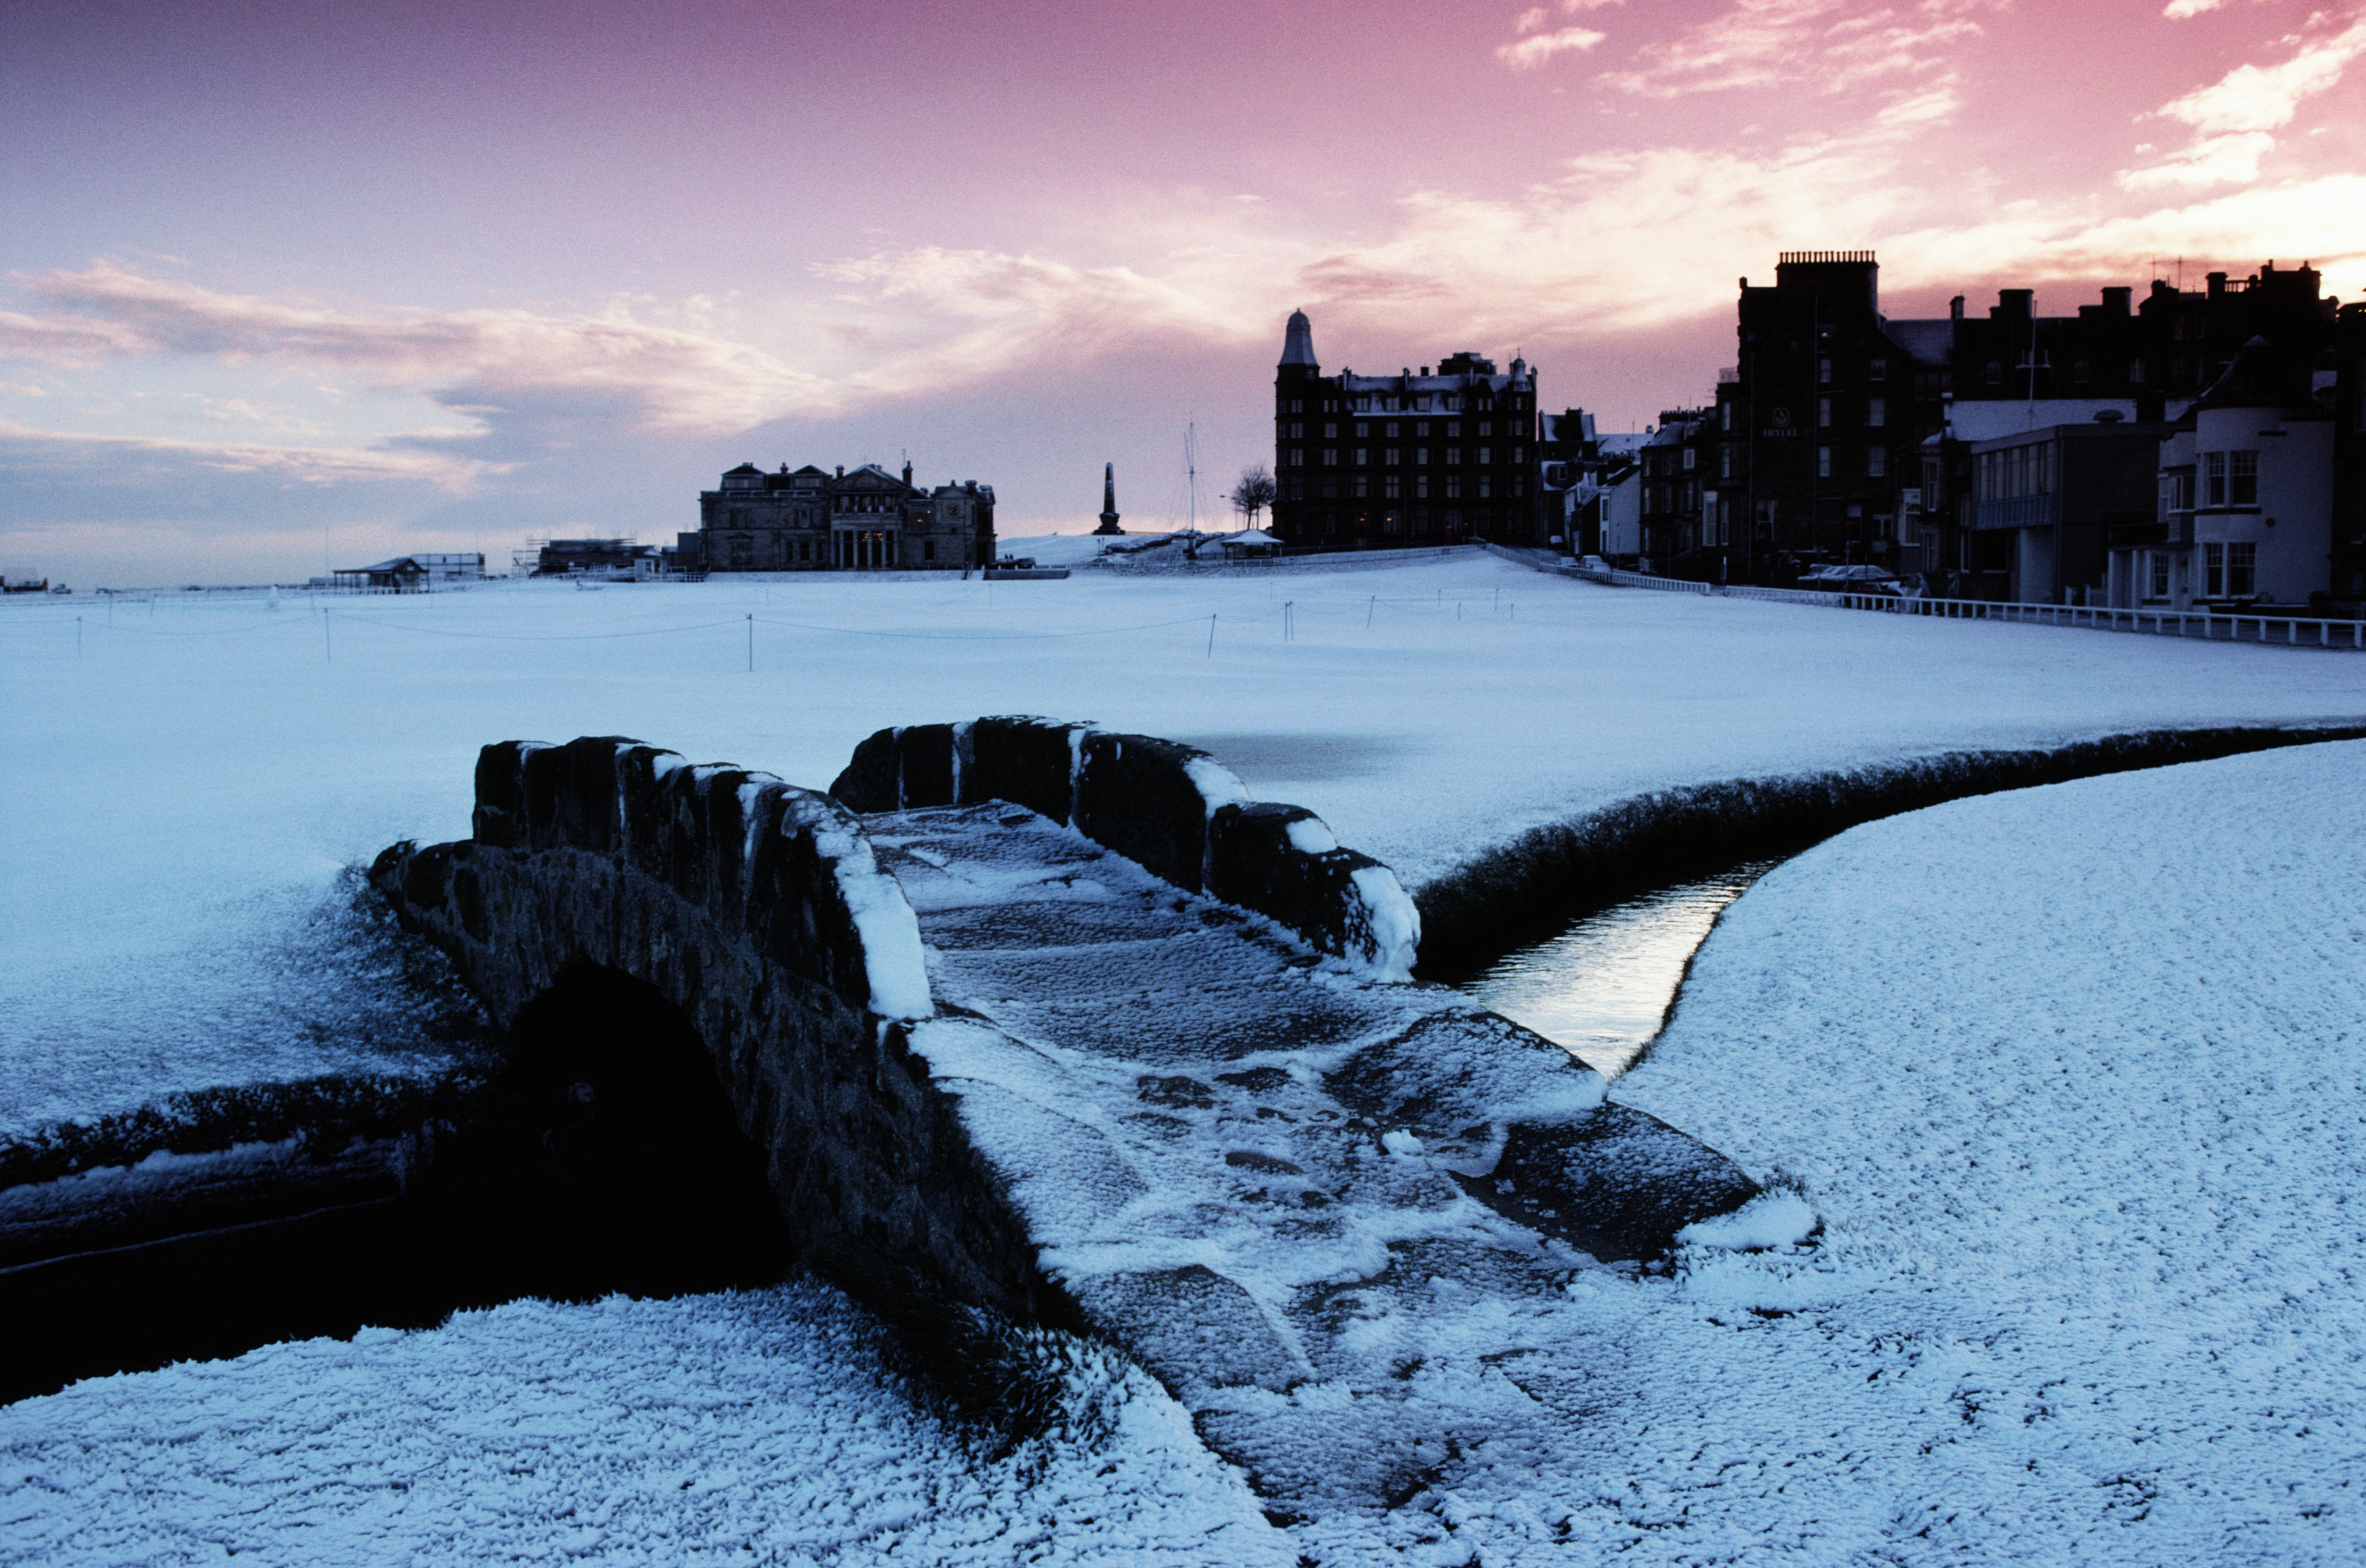 The Swilcan Bridge and the Old Course at St. Andrews under a light blanket of snow.